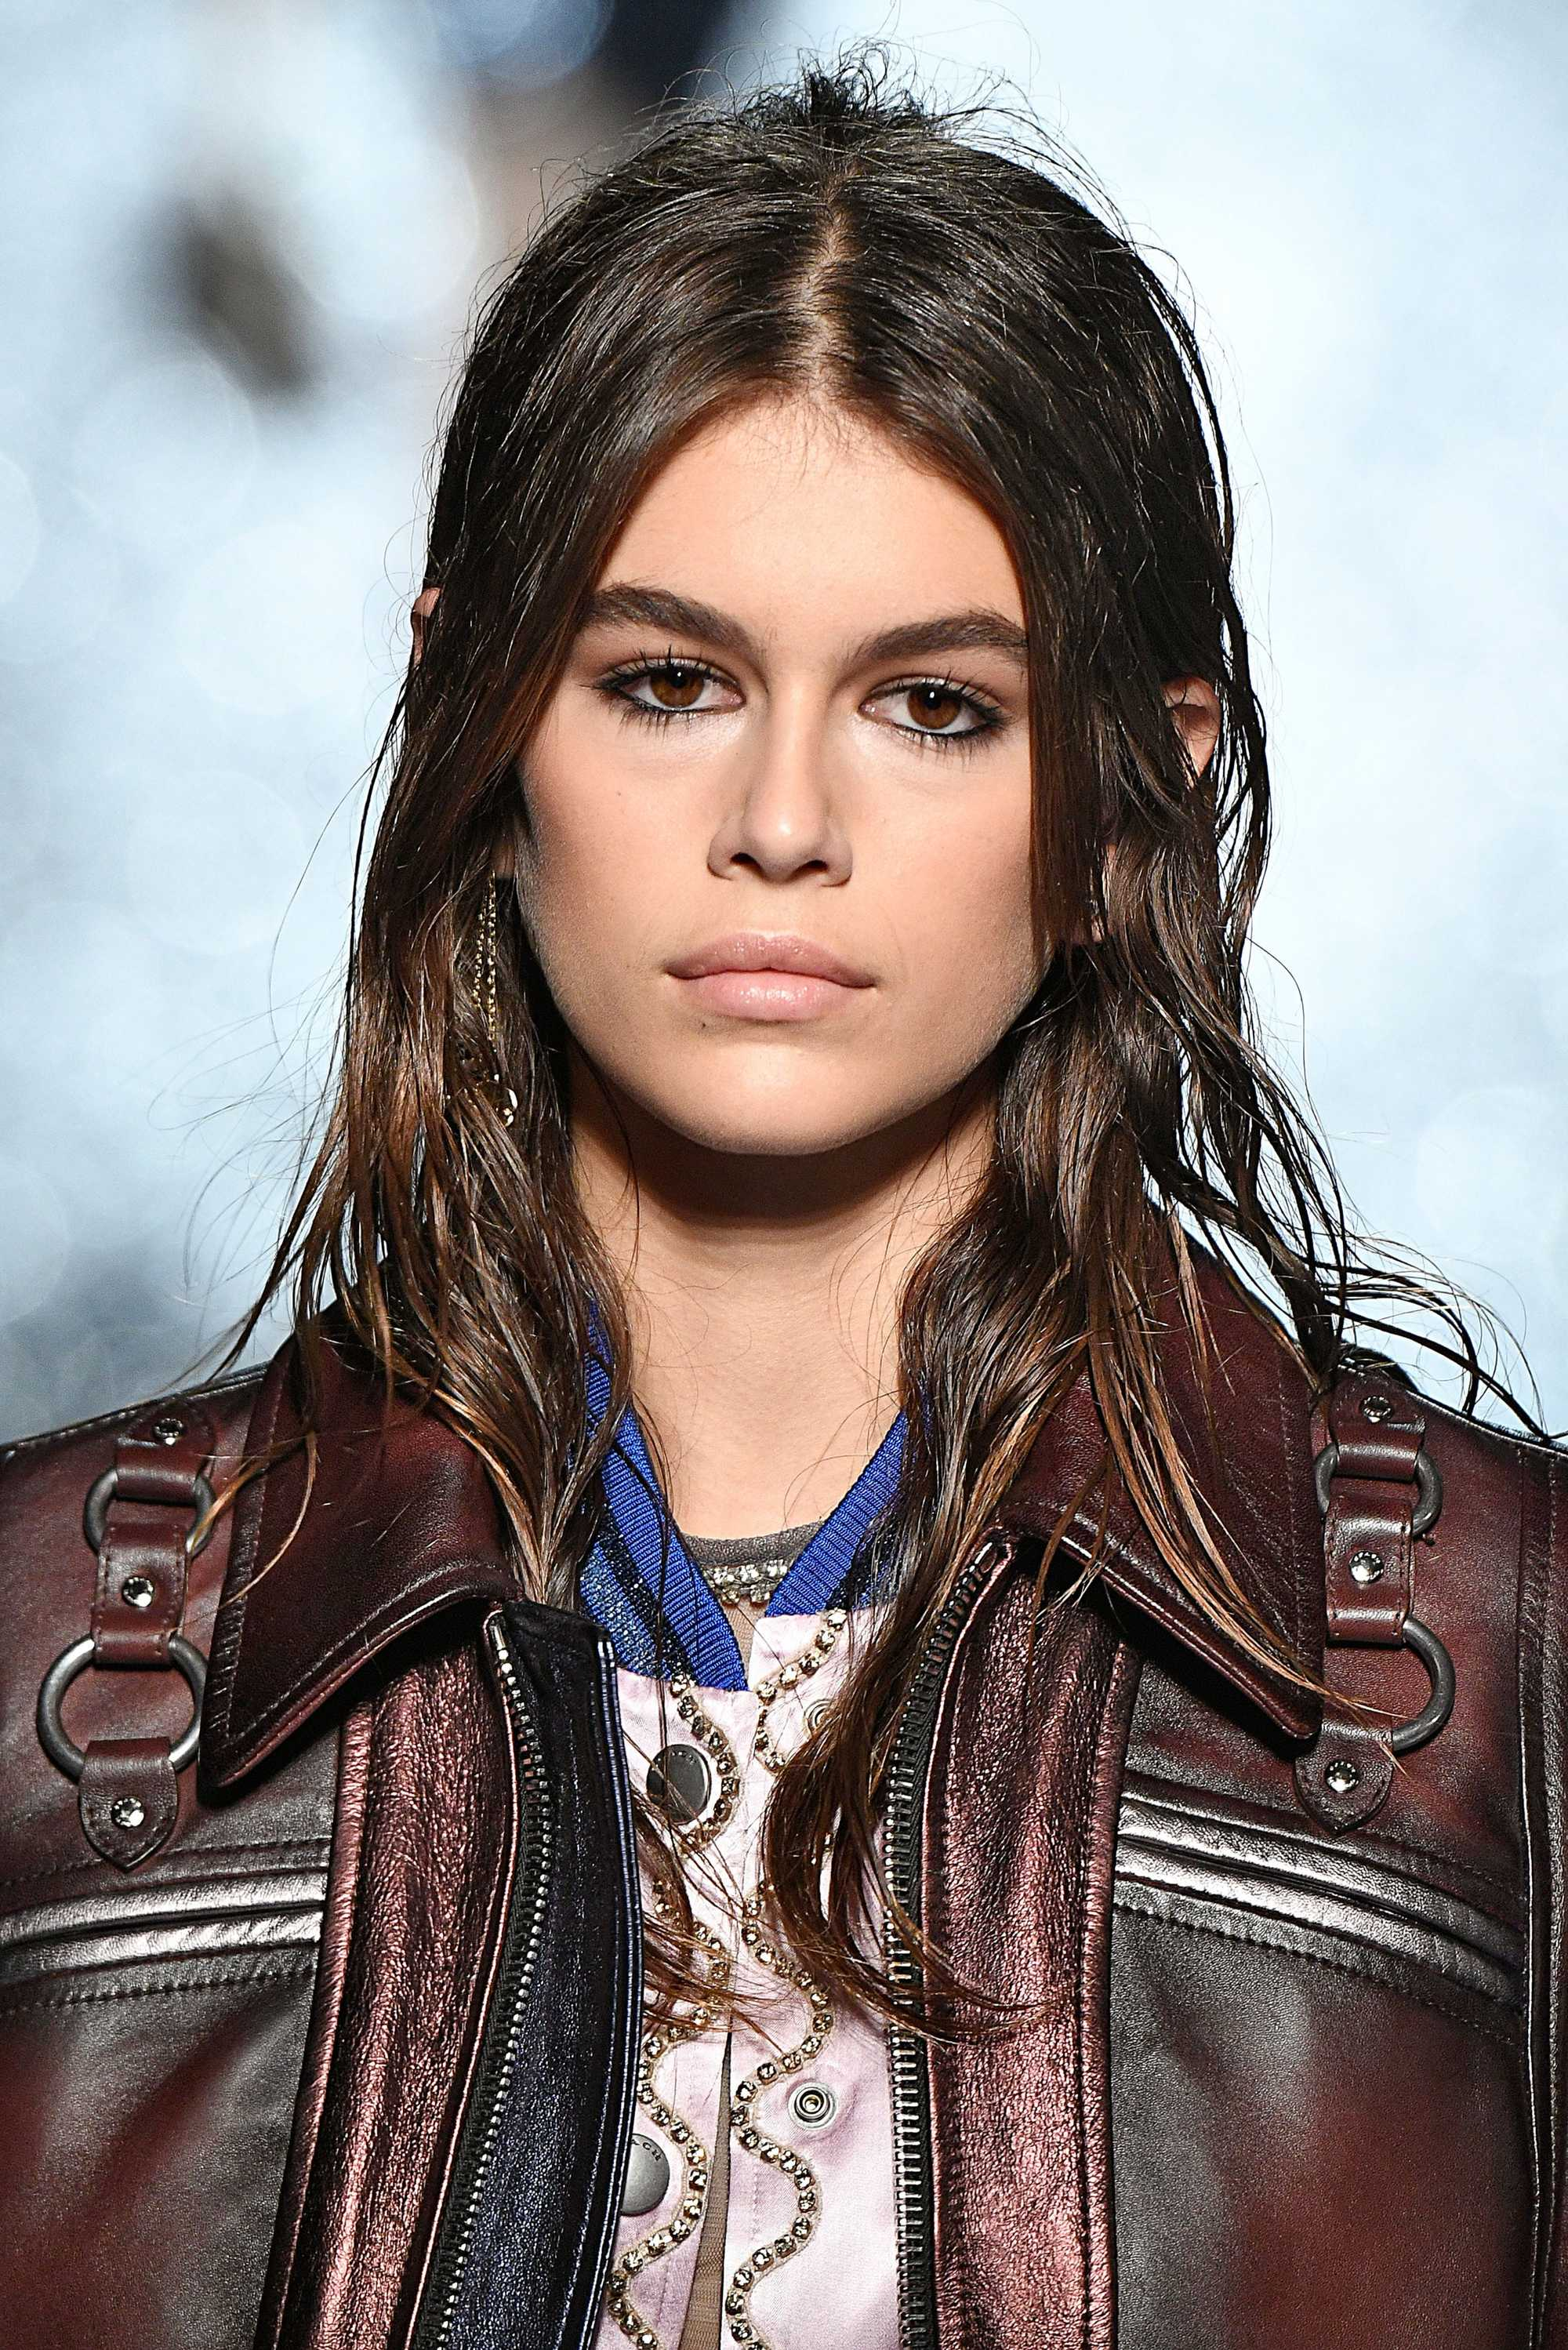 kaia gerber on coach ss18 runway with brown wet look hair in half-up, half-down wavy style